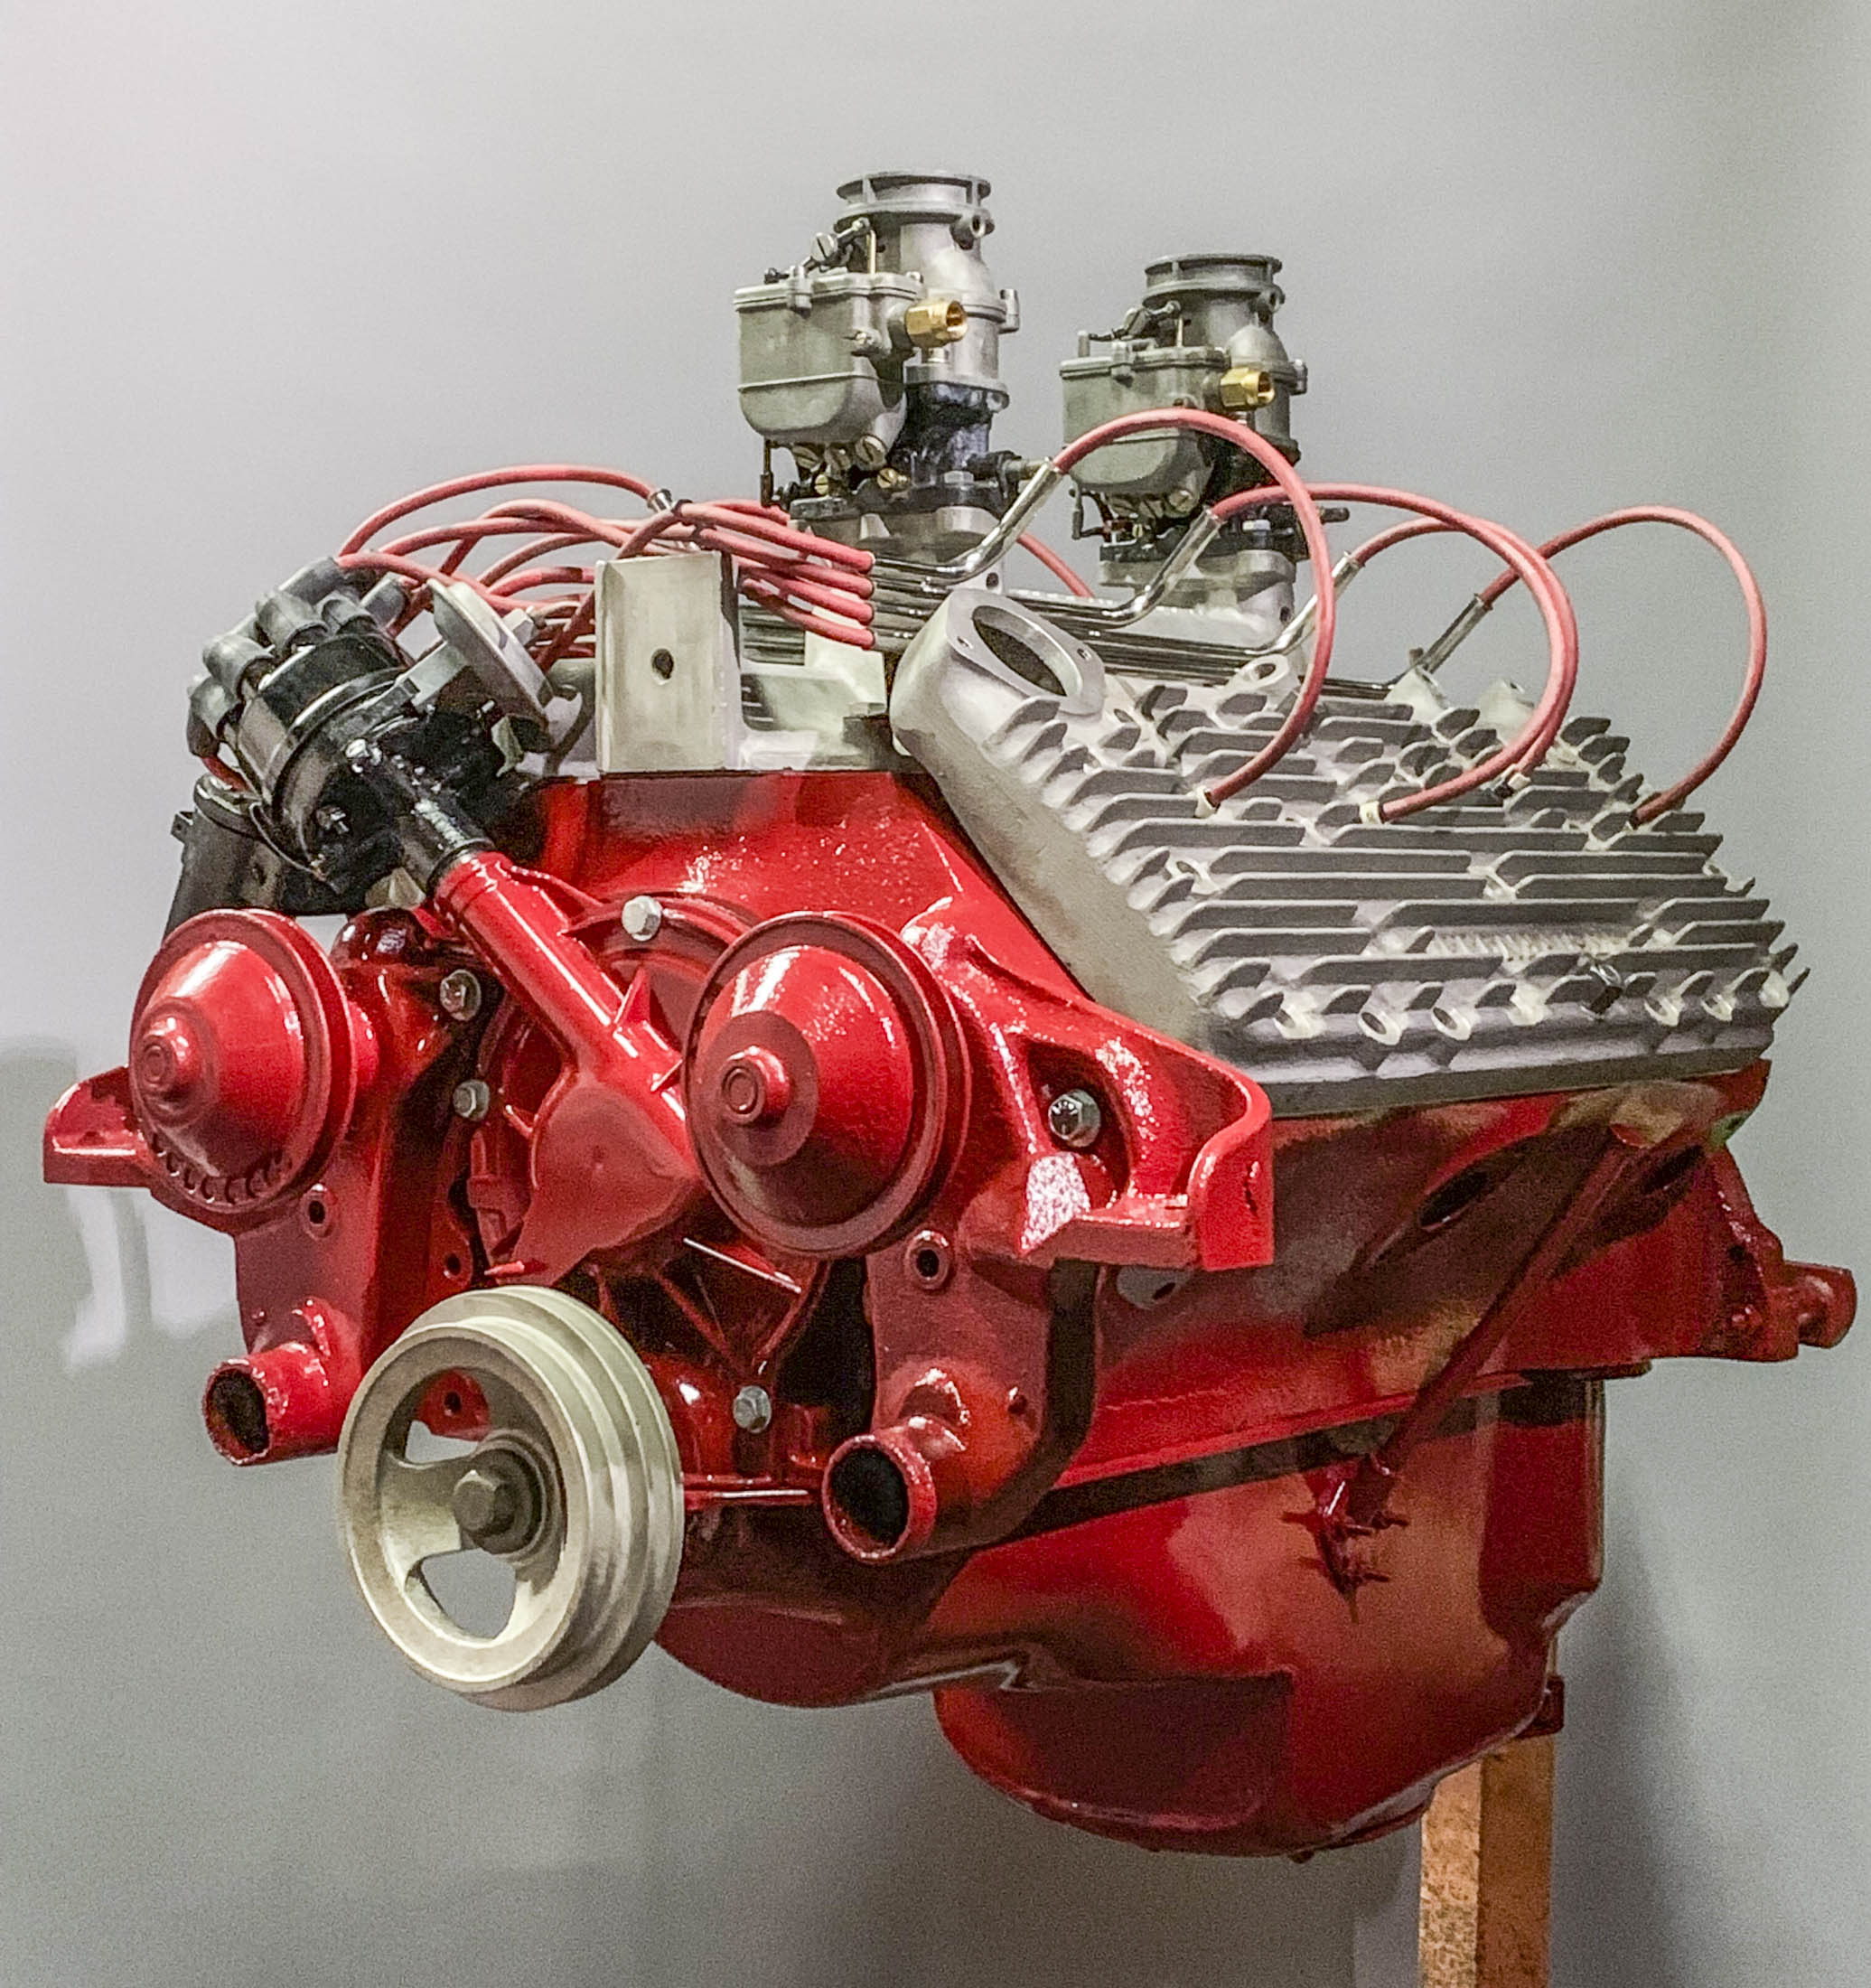 8ba fitted with a merc crank (4 inch stroke) .030 over , max one cam , All new speed parts from  Offenhauser Equipment  Adjustable lifters , hardened seats and on and on , bunch of good stuff